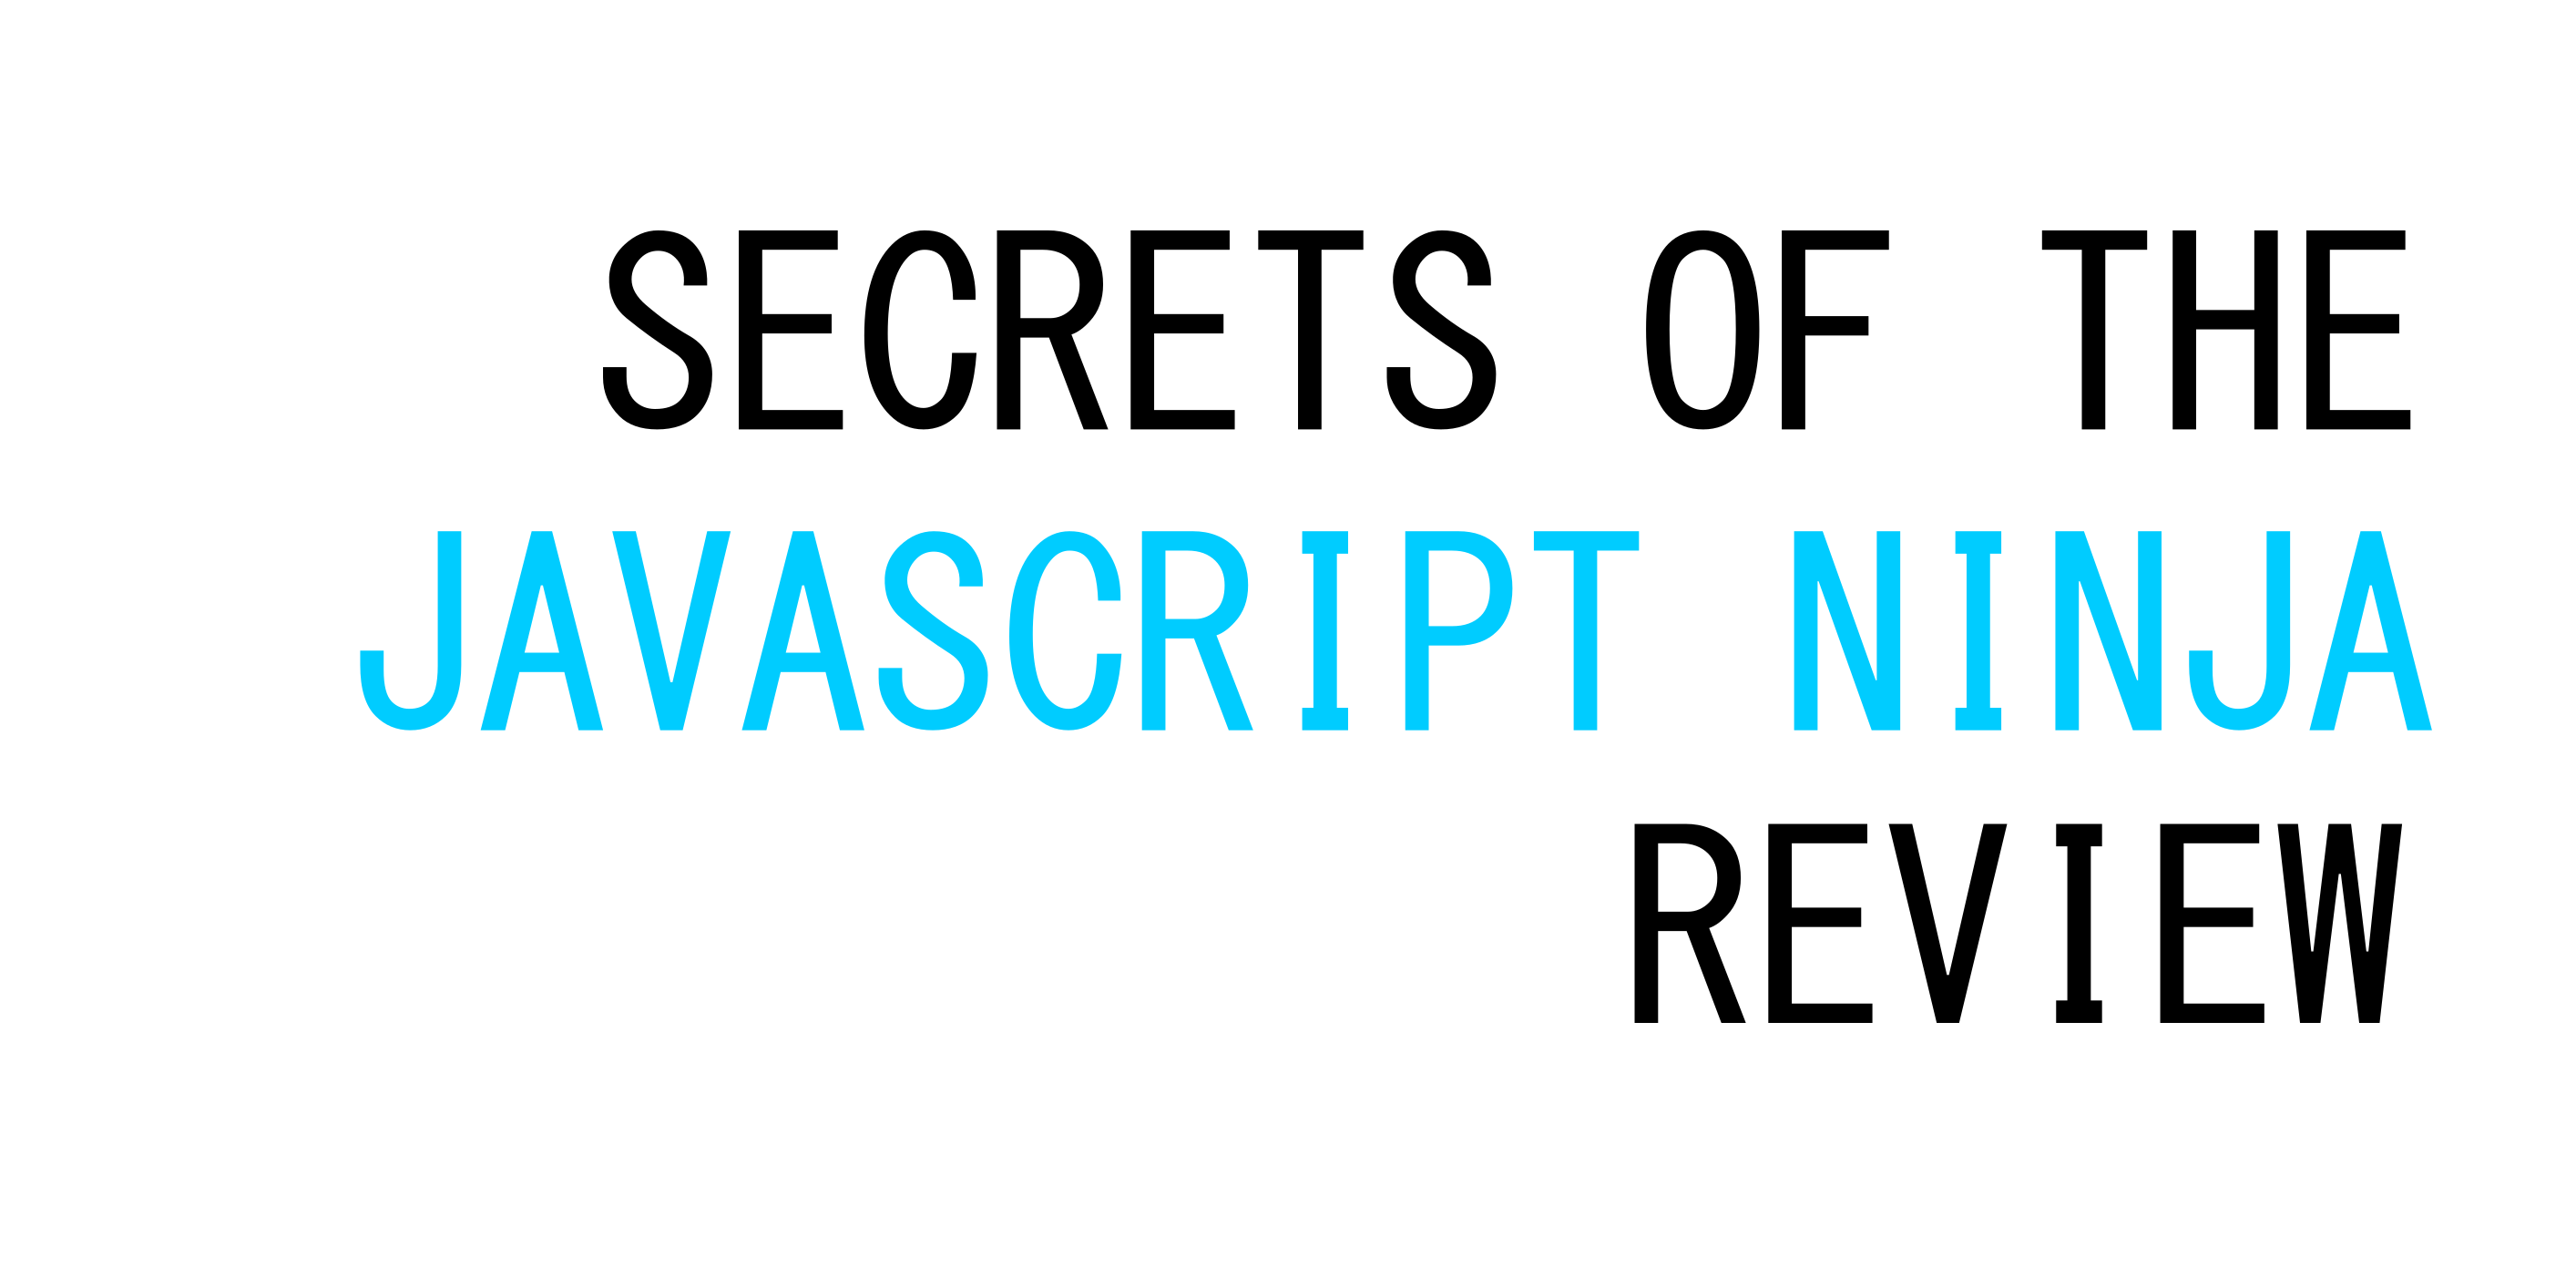 'Secrets Of The Javascript Ninja' Review